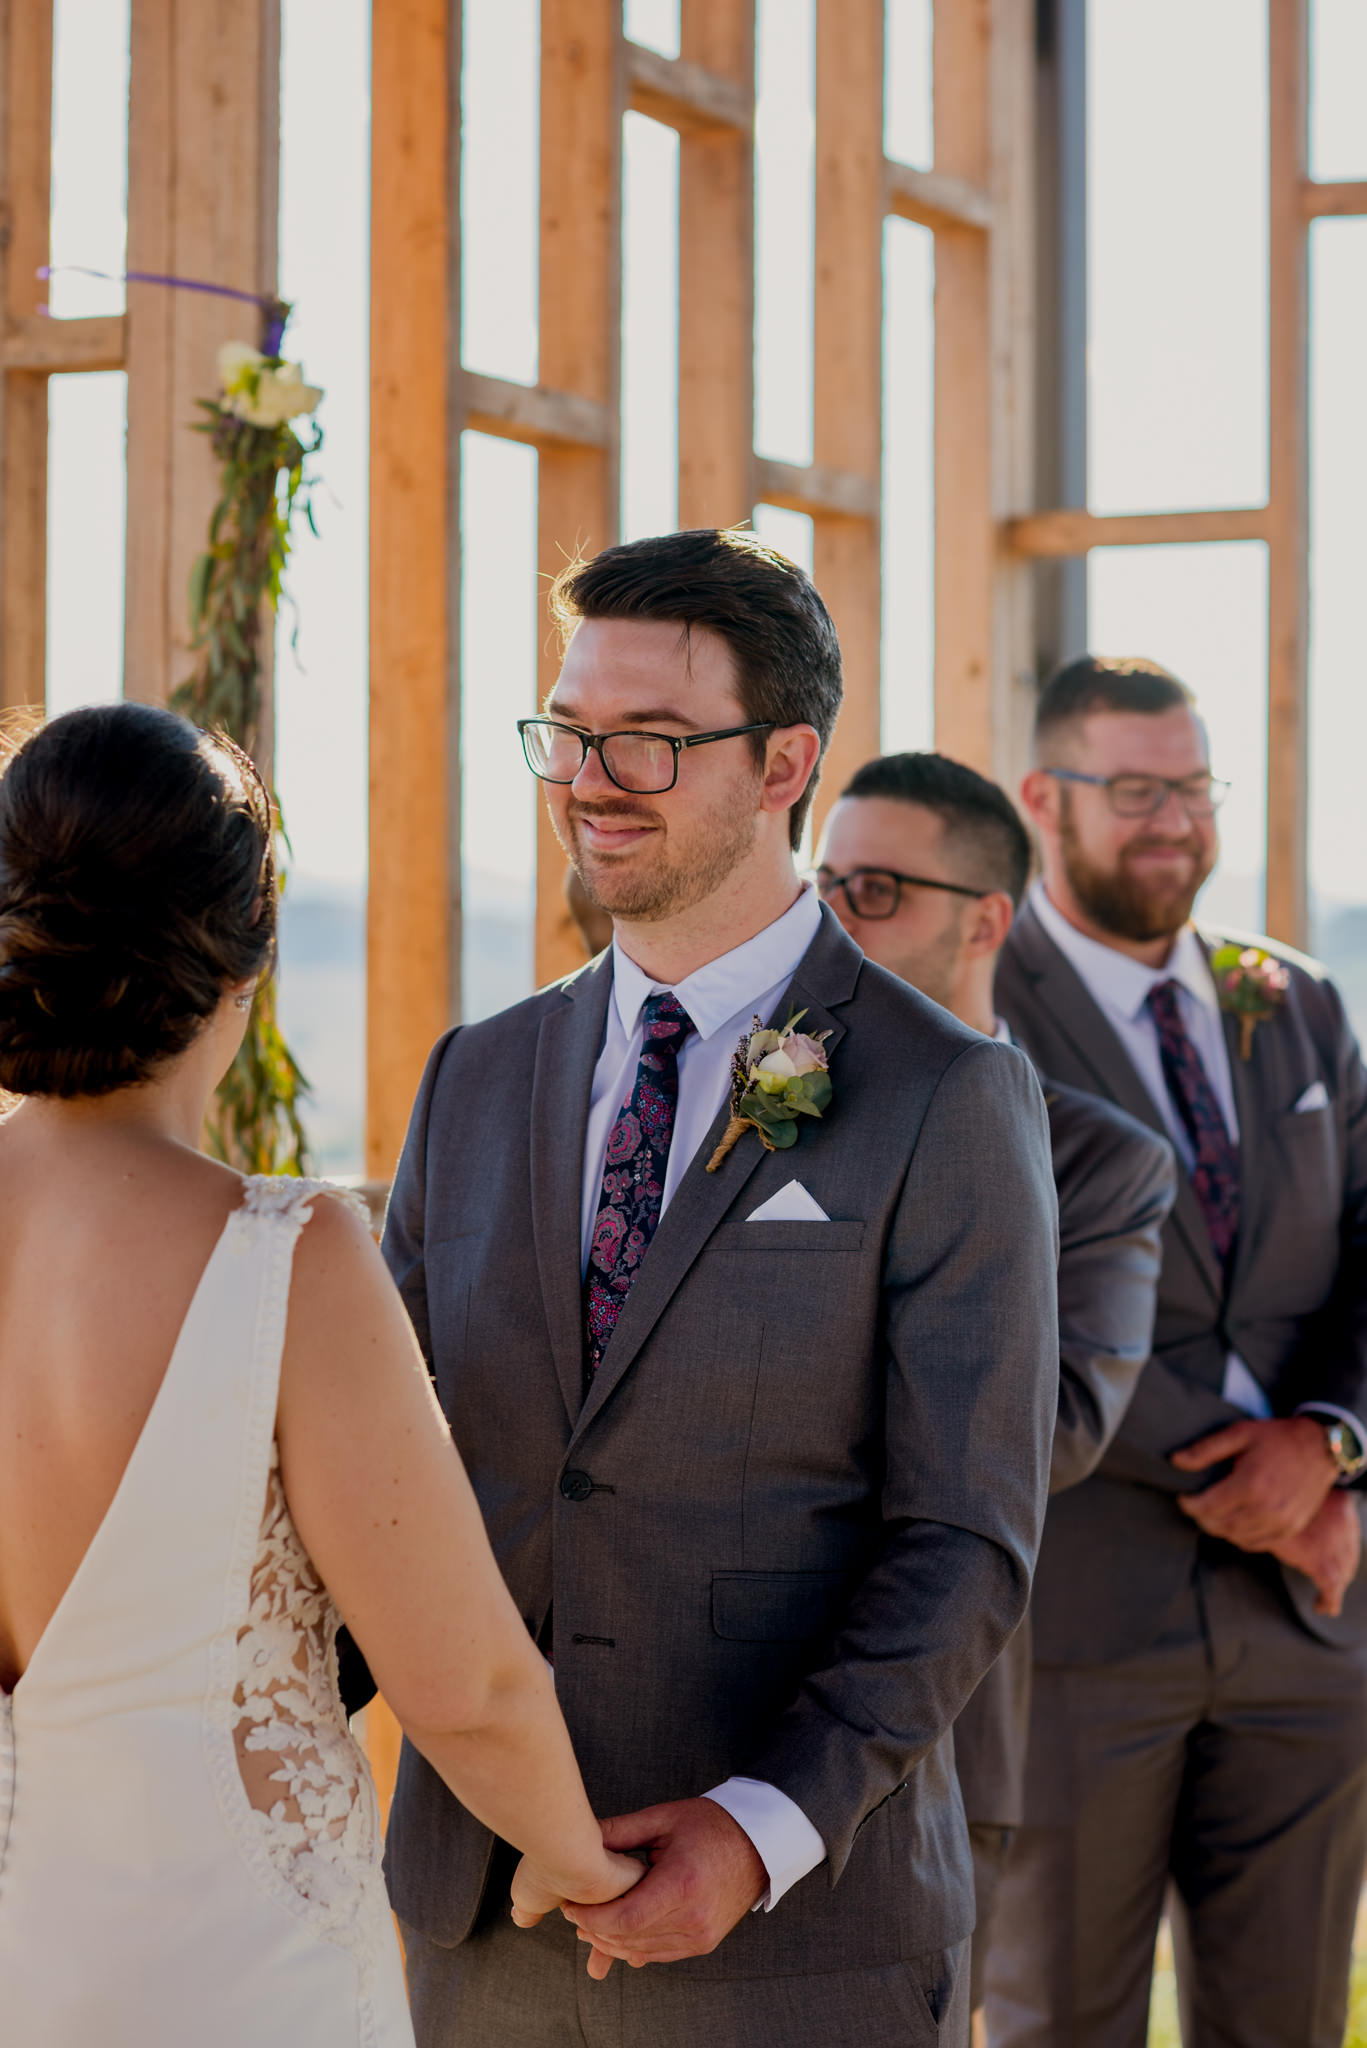 Groom in grey suit facing bride and smiling